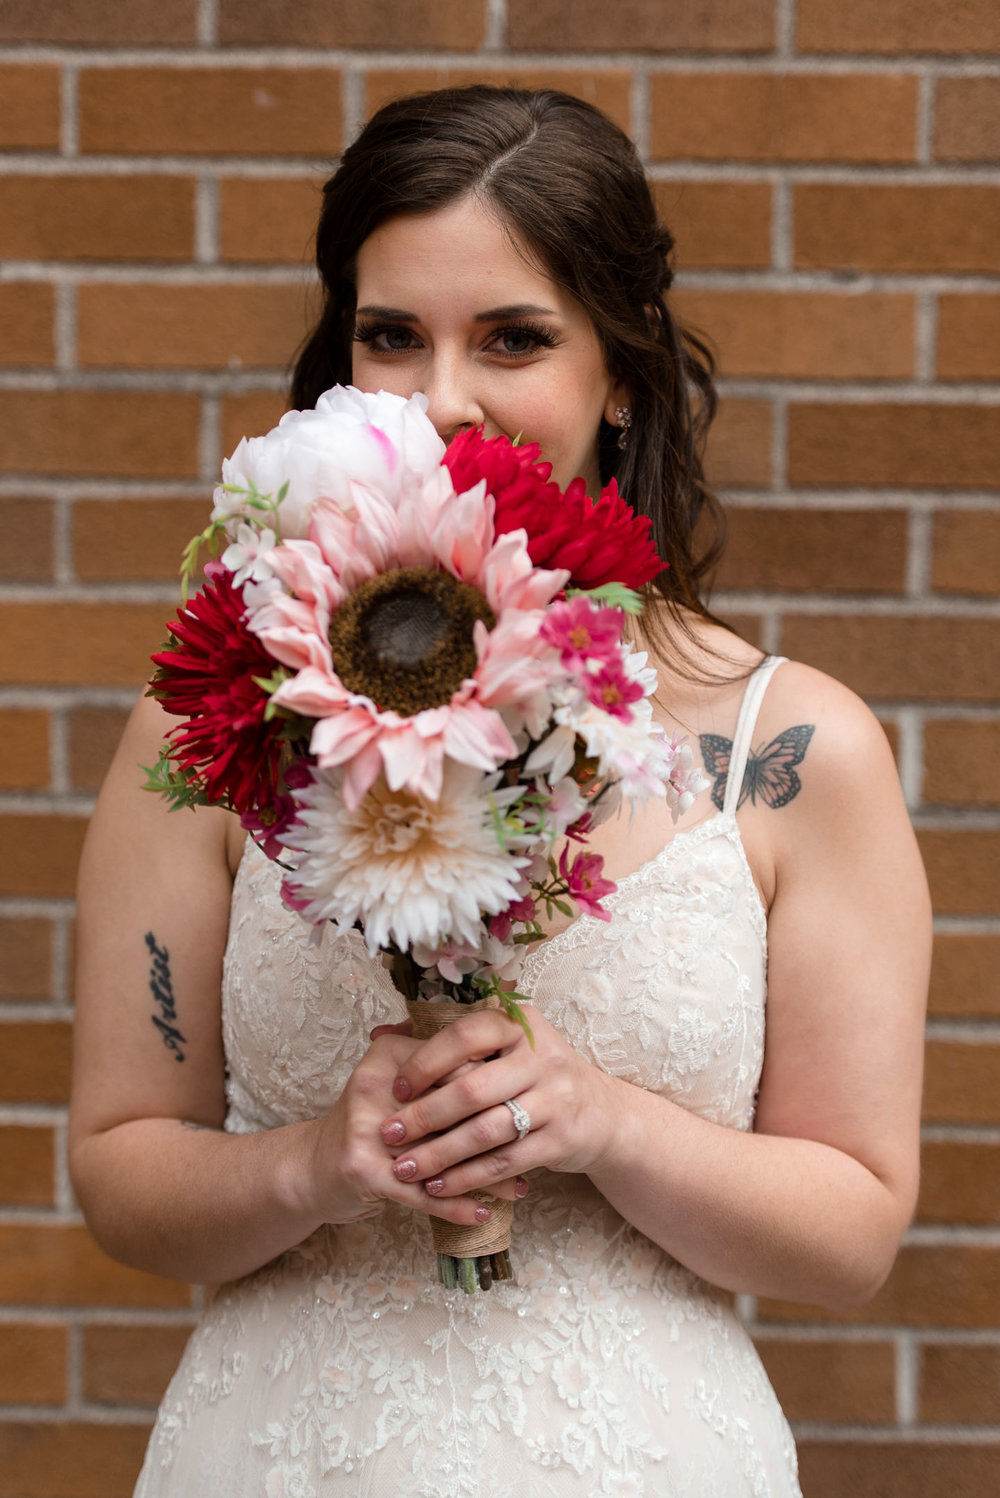 Bride Flowers Portrait at University of Washington